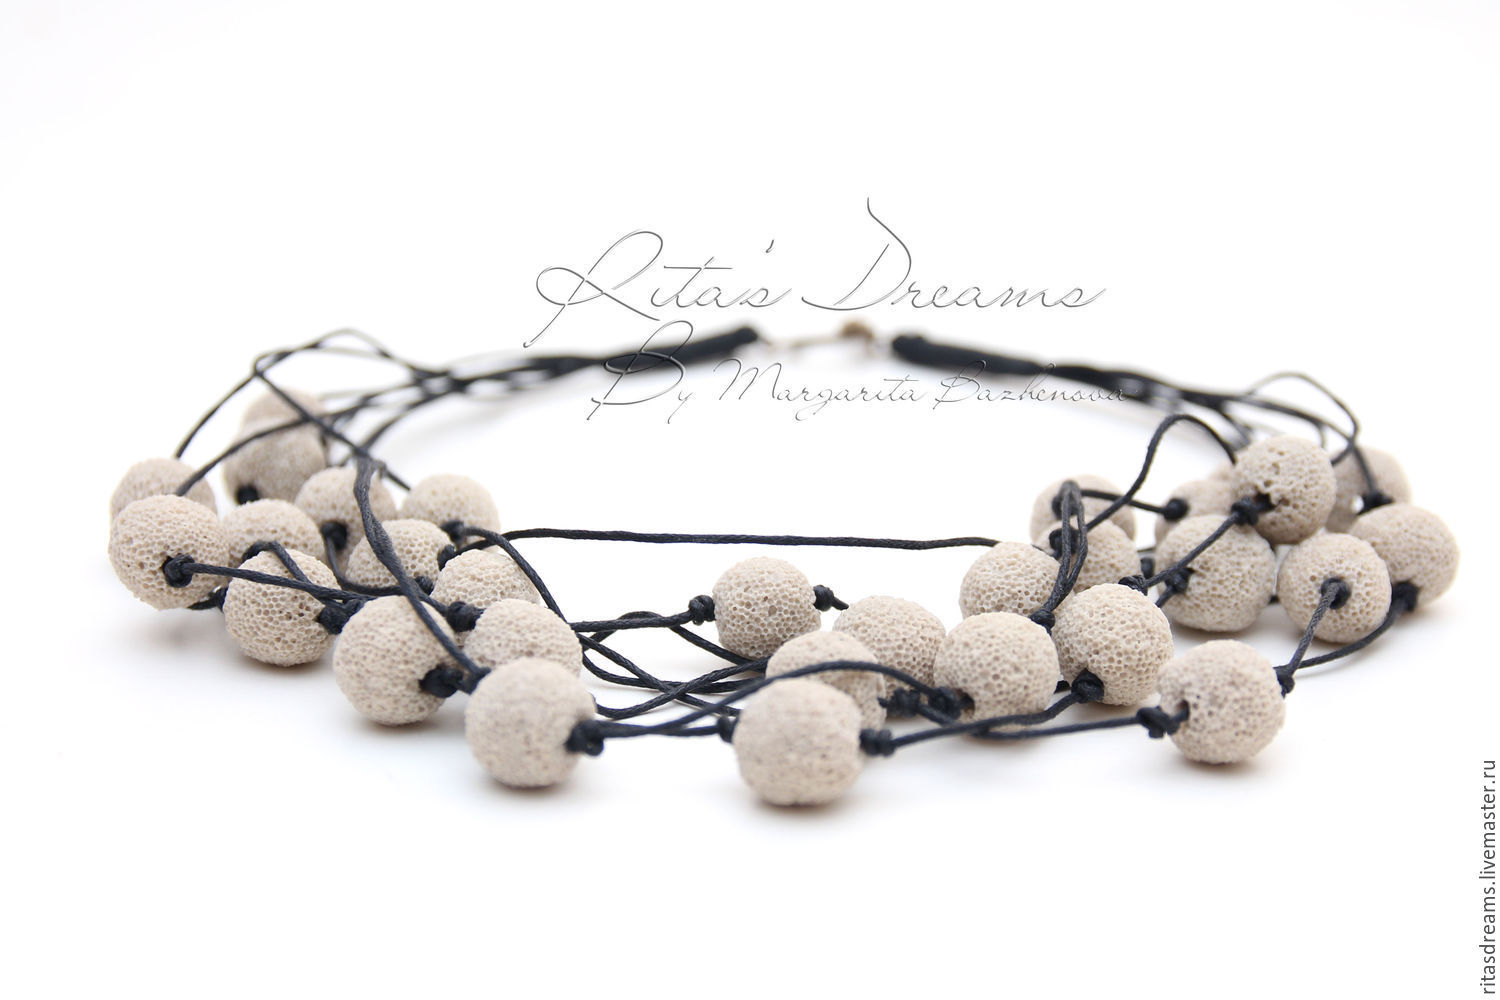 The porous volcanic lava on the smooth waxed cord - a concise but effective decoration for every day.